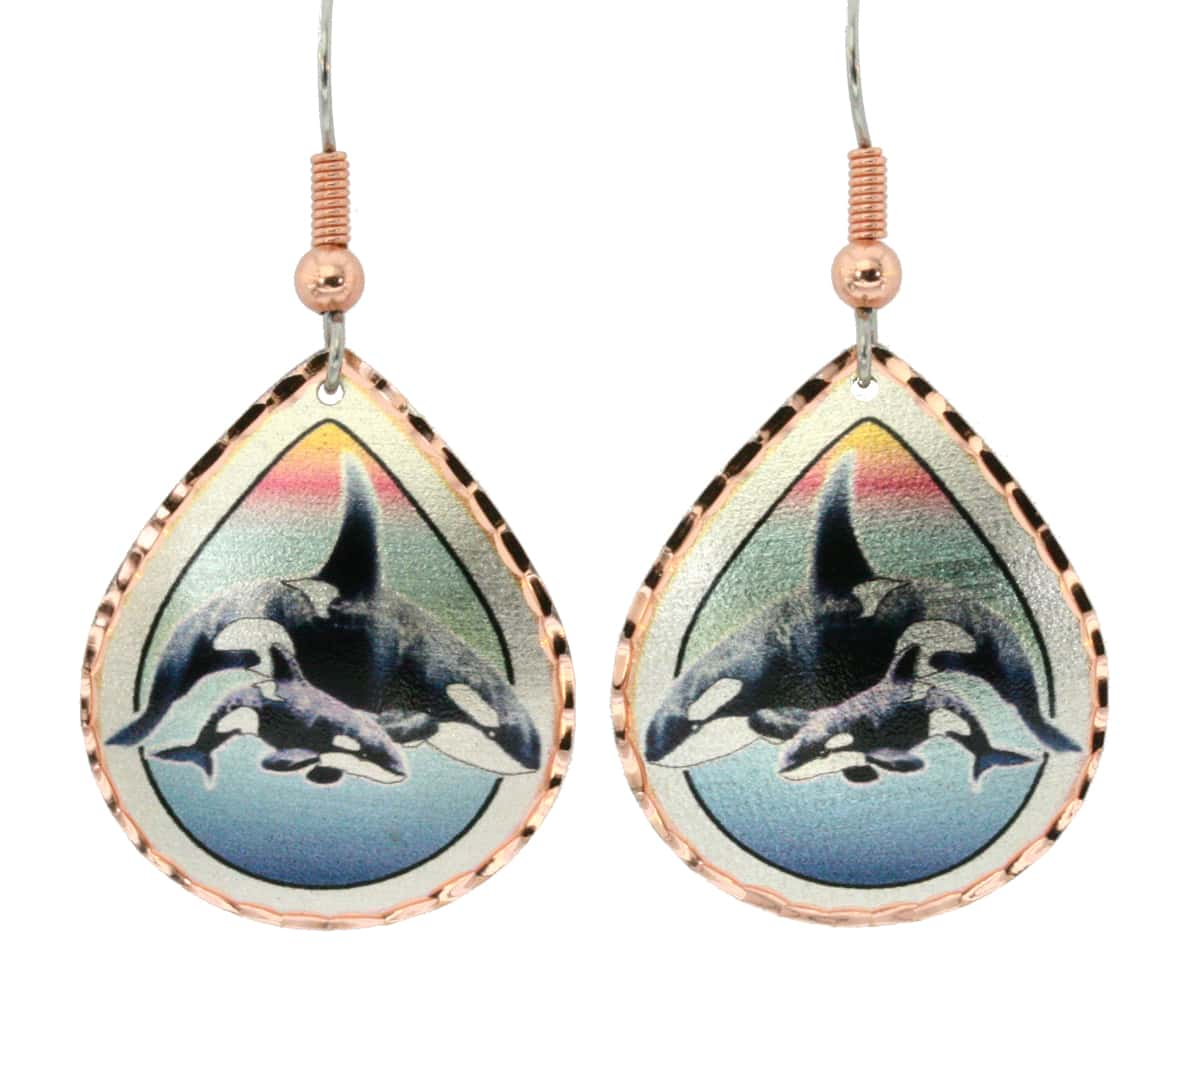 Colorful killer whale earrings handmade by skilled artisans in fine quality